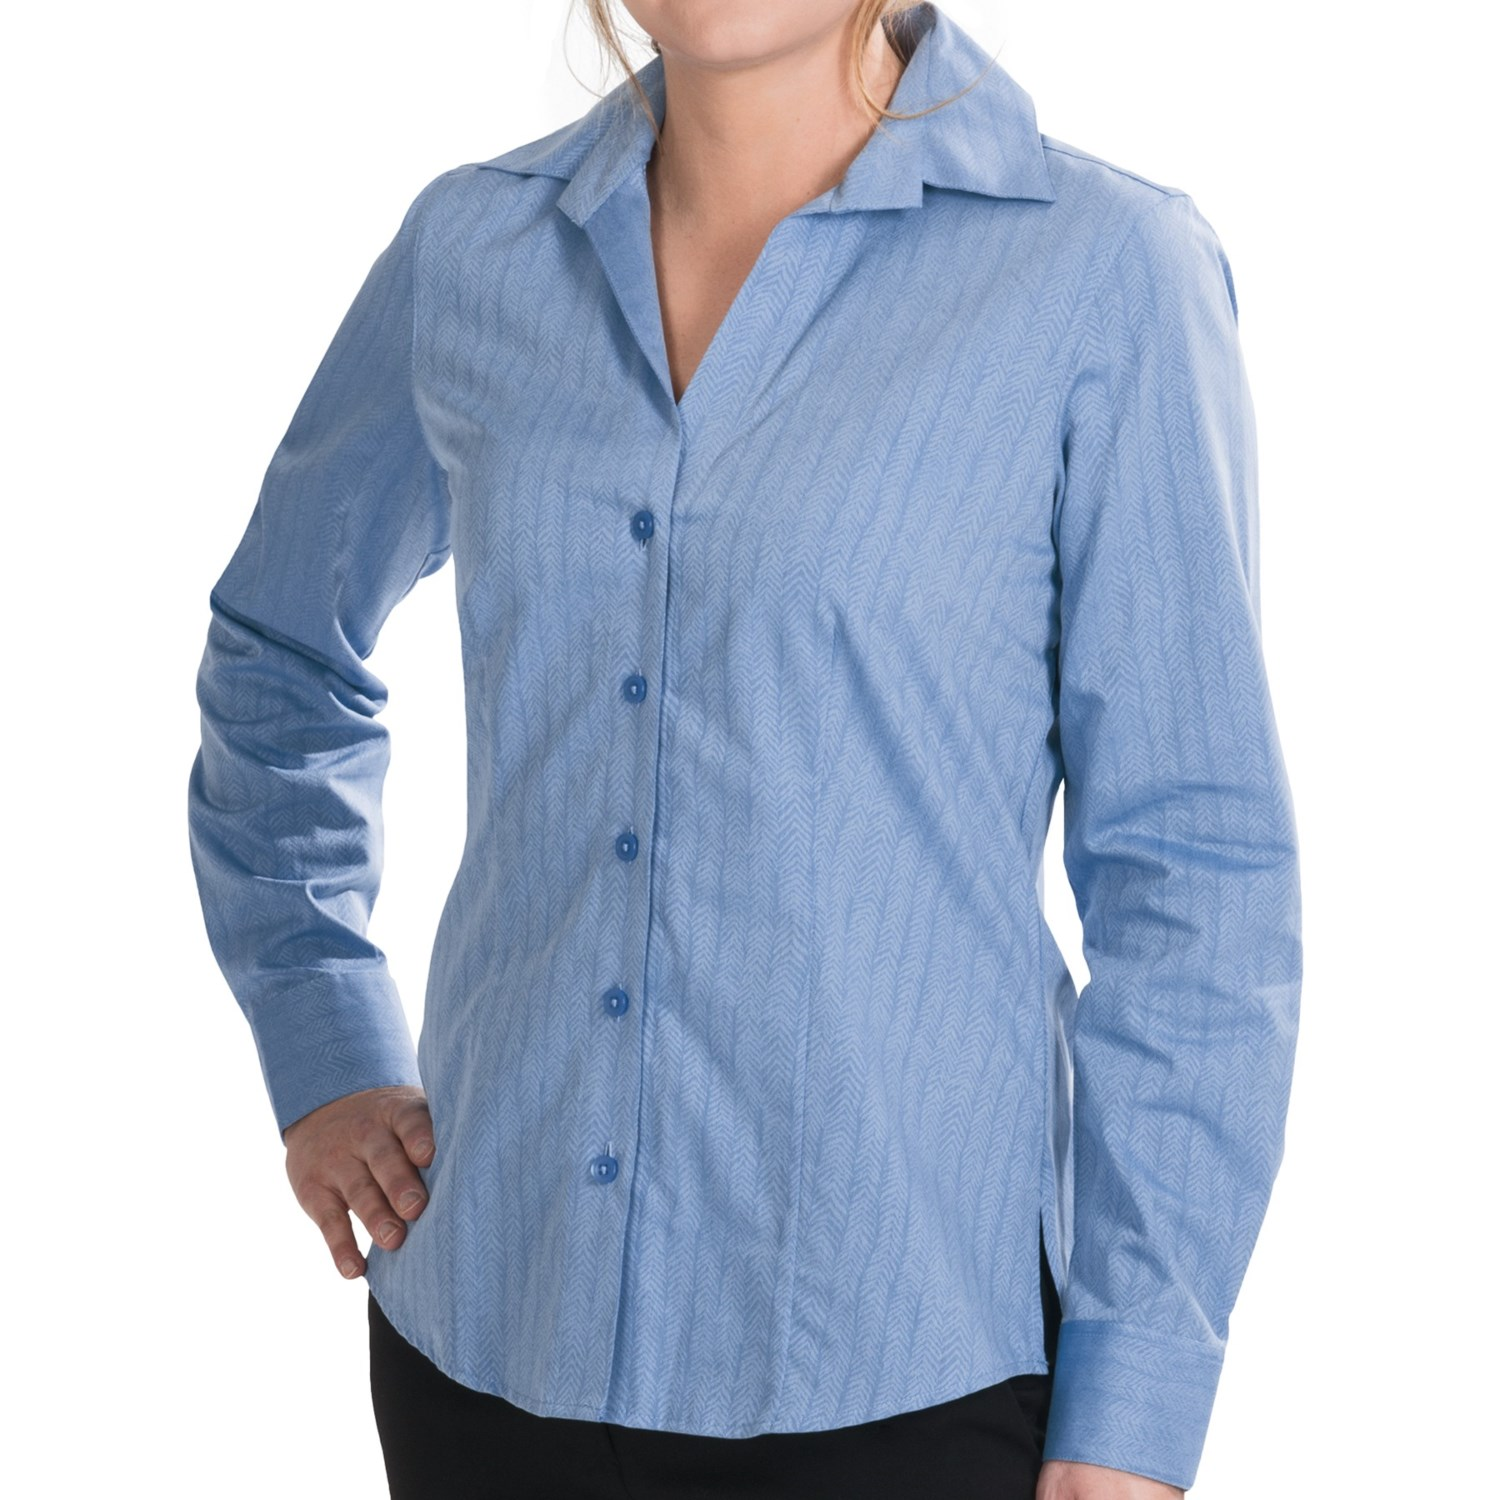 women 39 s shirts and blouses no wrinkle smart casual blouse